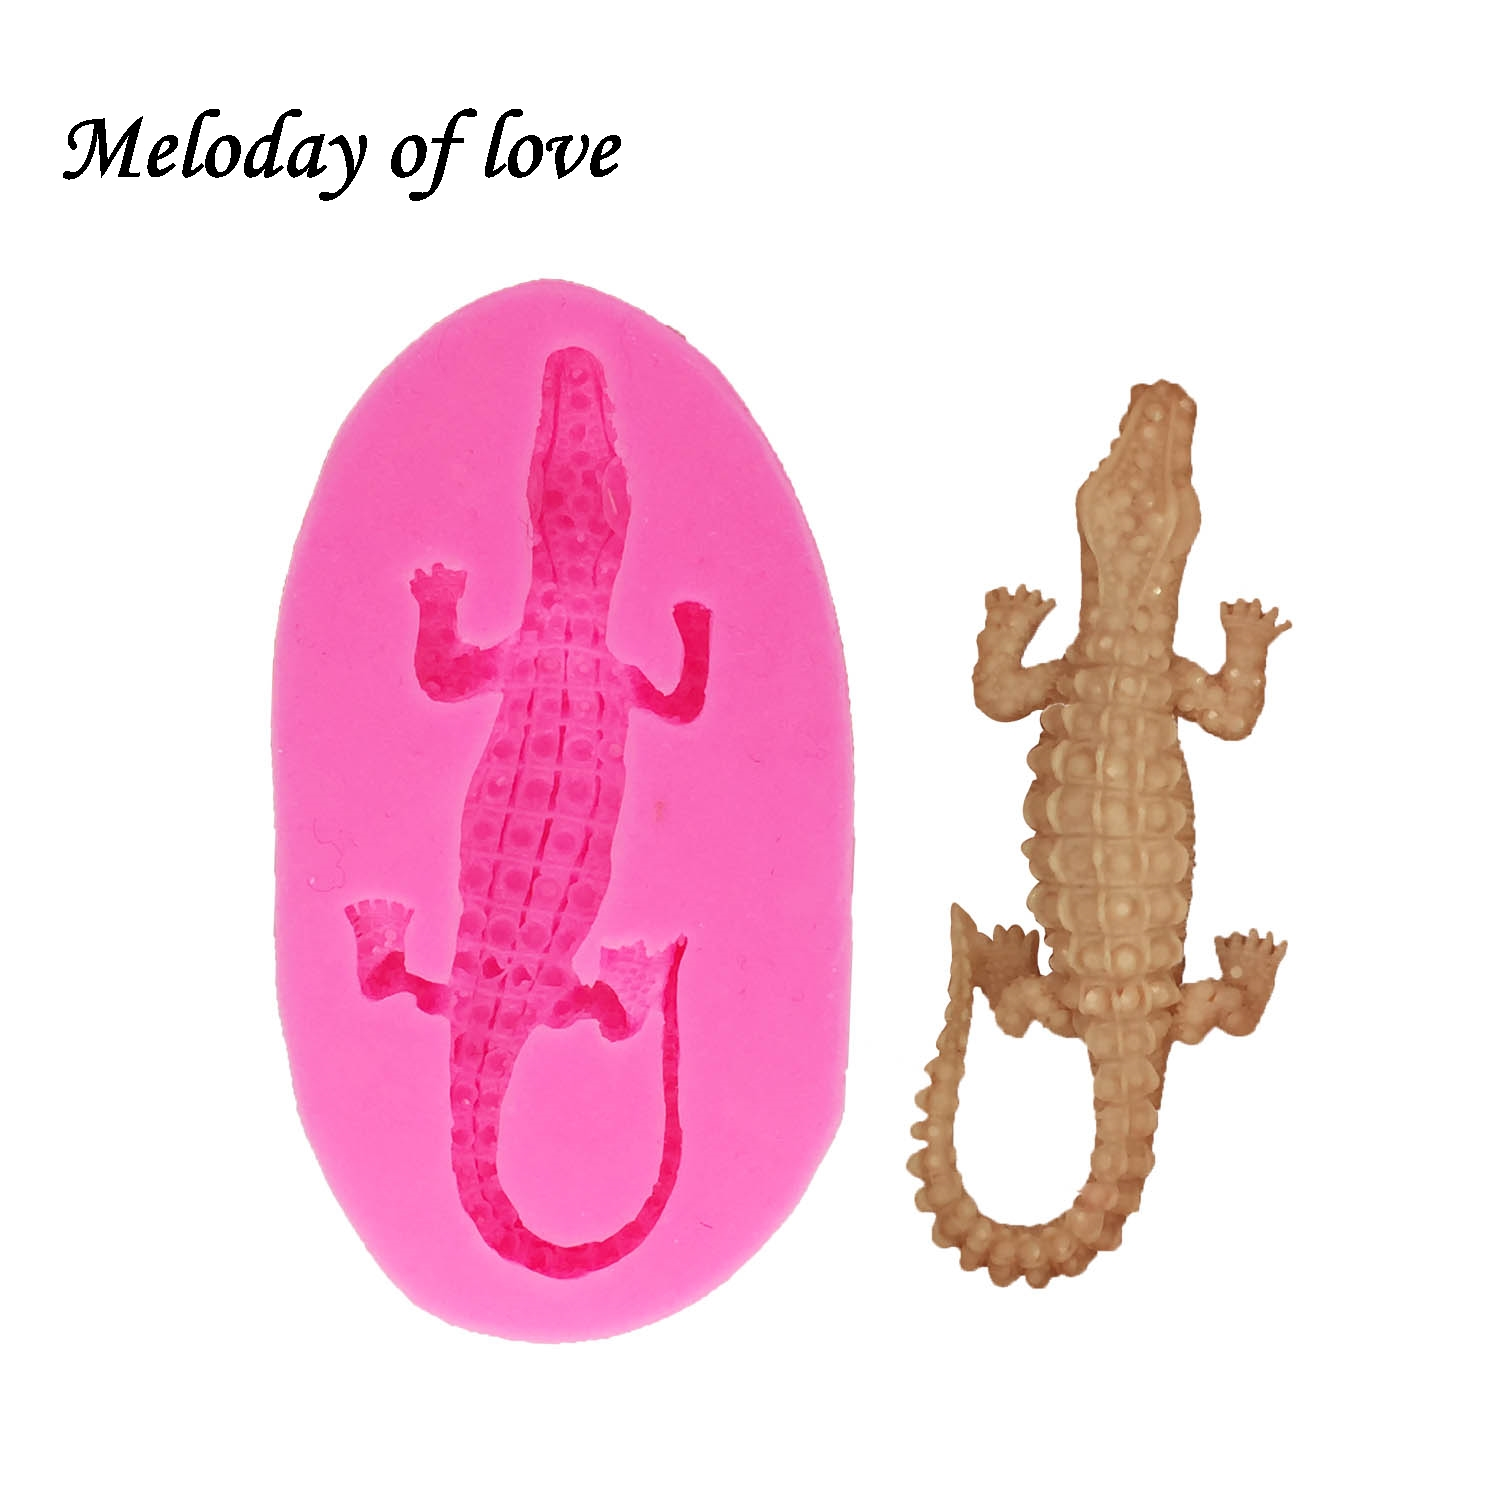 Liberal 3d Gecko Form Silicone Mold Fondant Cookie Baking Chocolate Cake Decorating Tools Resin Clay Mold Dy0027 In Pain Home & Garden Clay Extruders